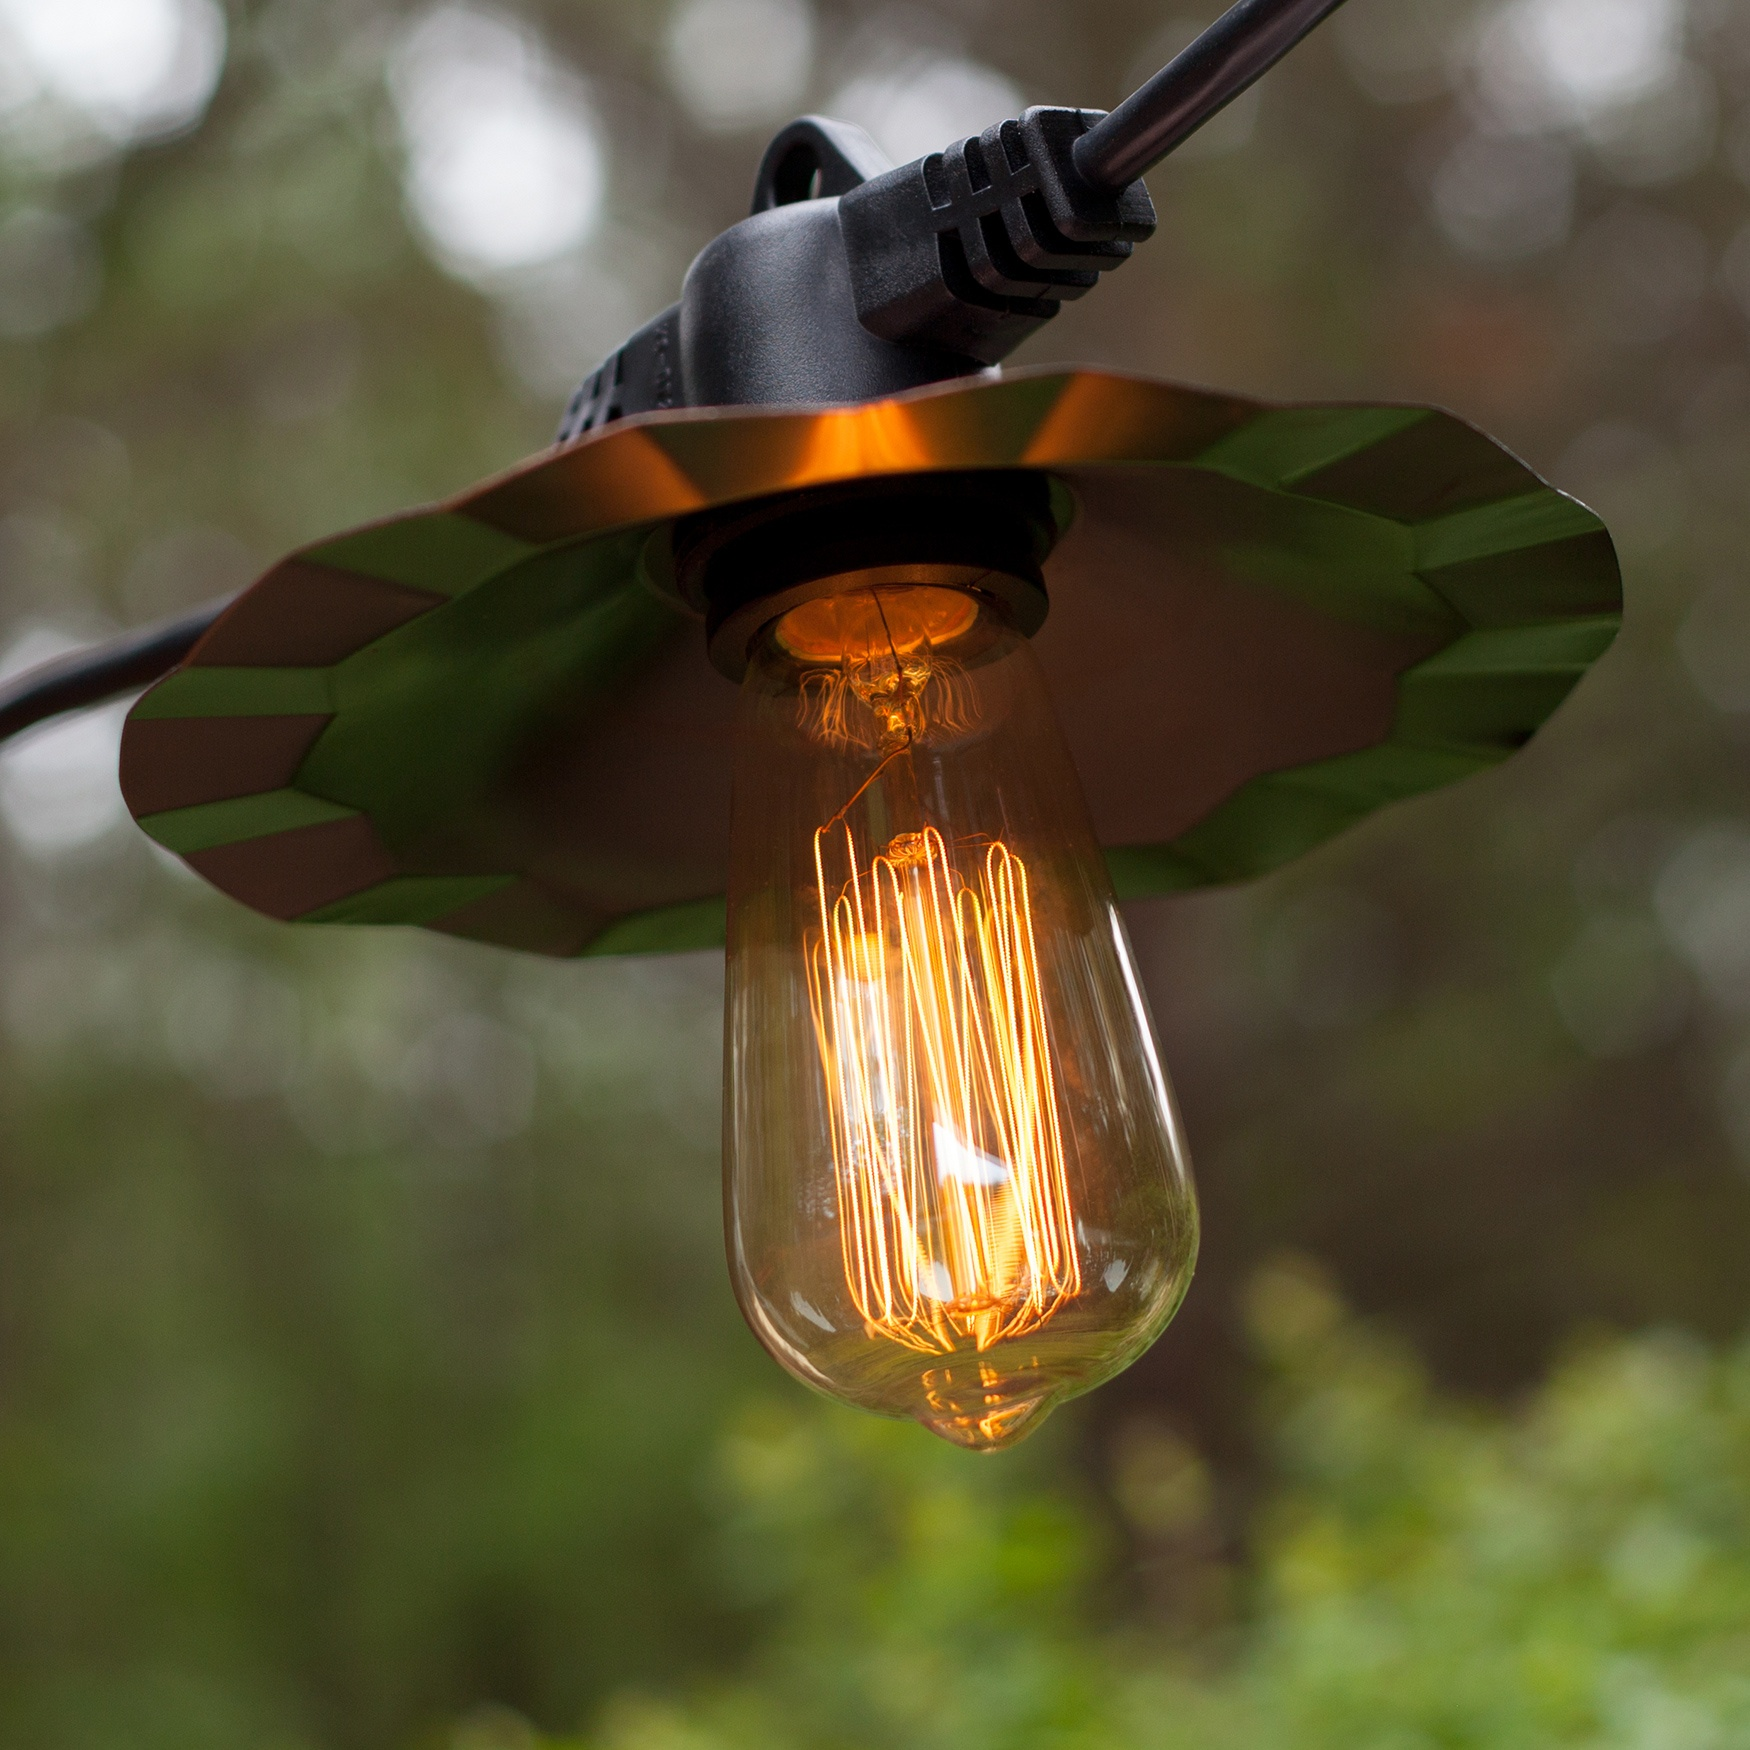 35u0027 Patio String With Copper Shades And Vintage Outdoor Patio Lights